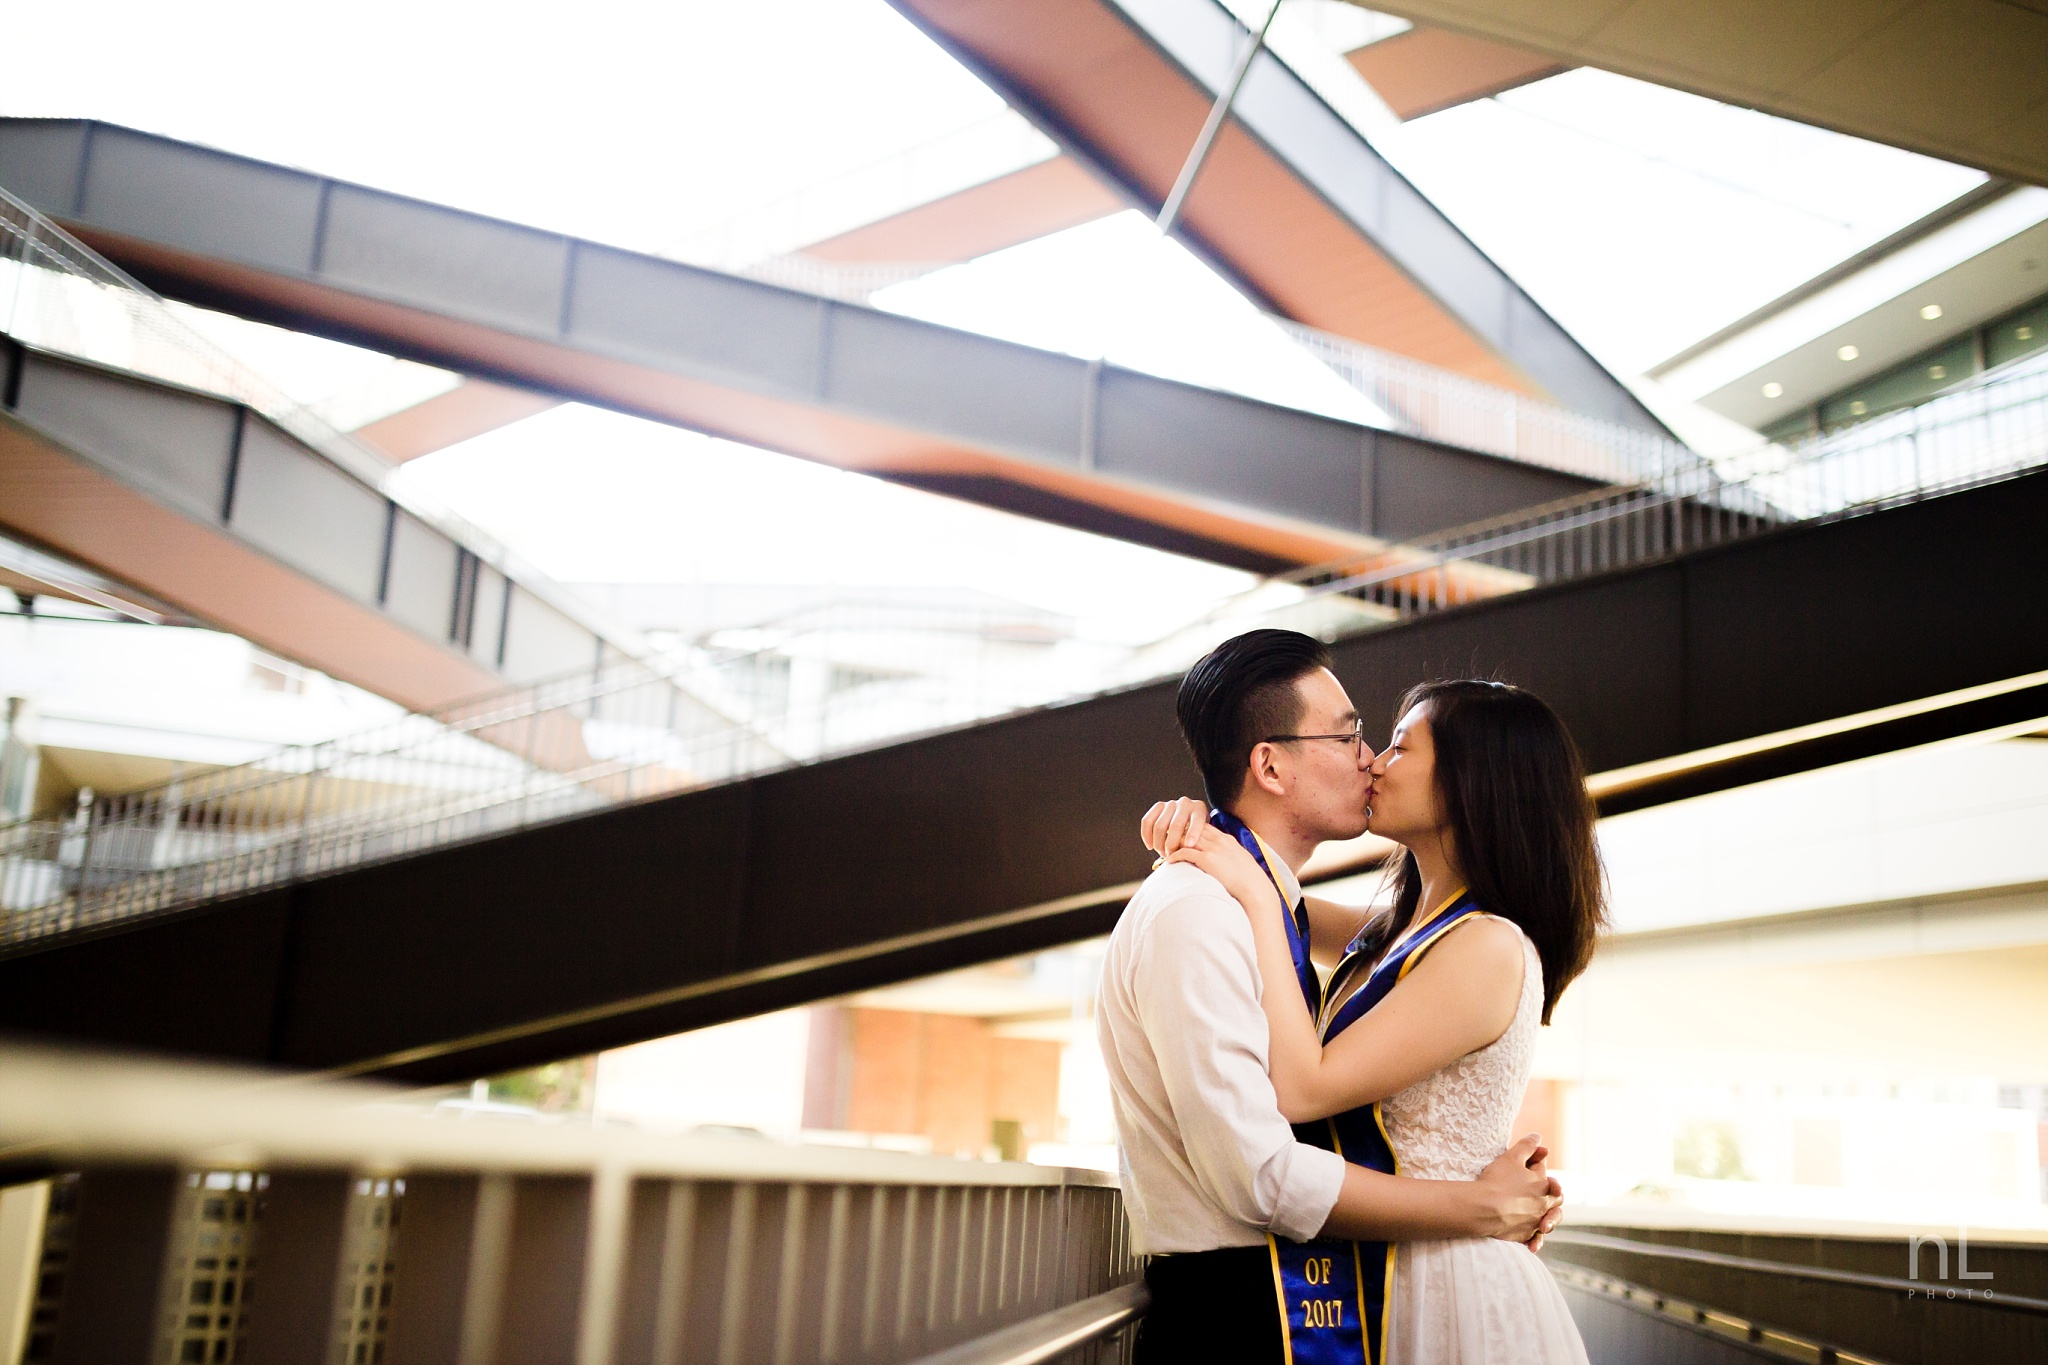 los angeles ucla senior graduation epic dramatic portrait cute architectural photo of cute couple kissing under staircases